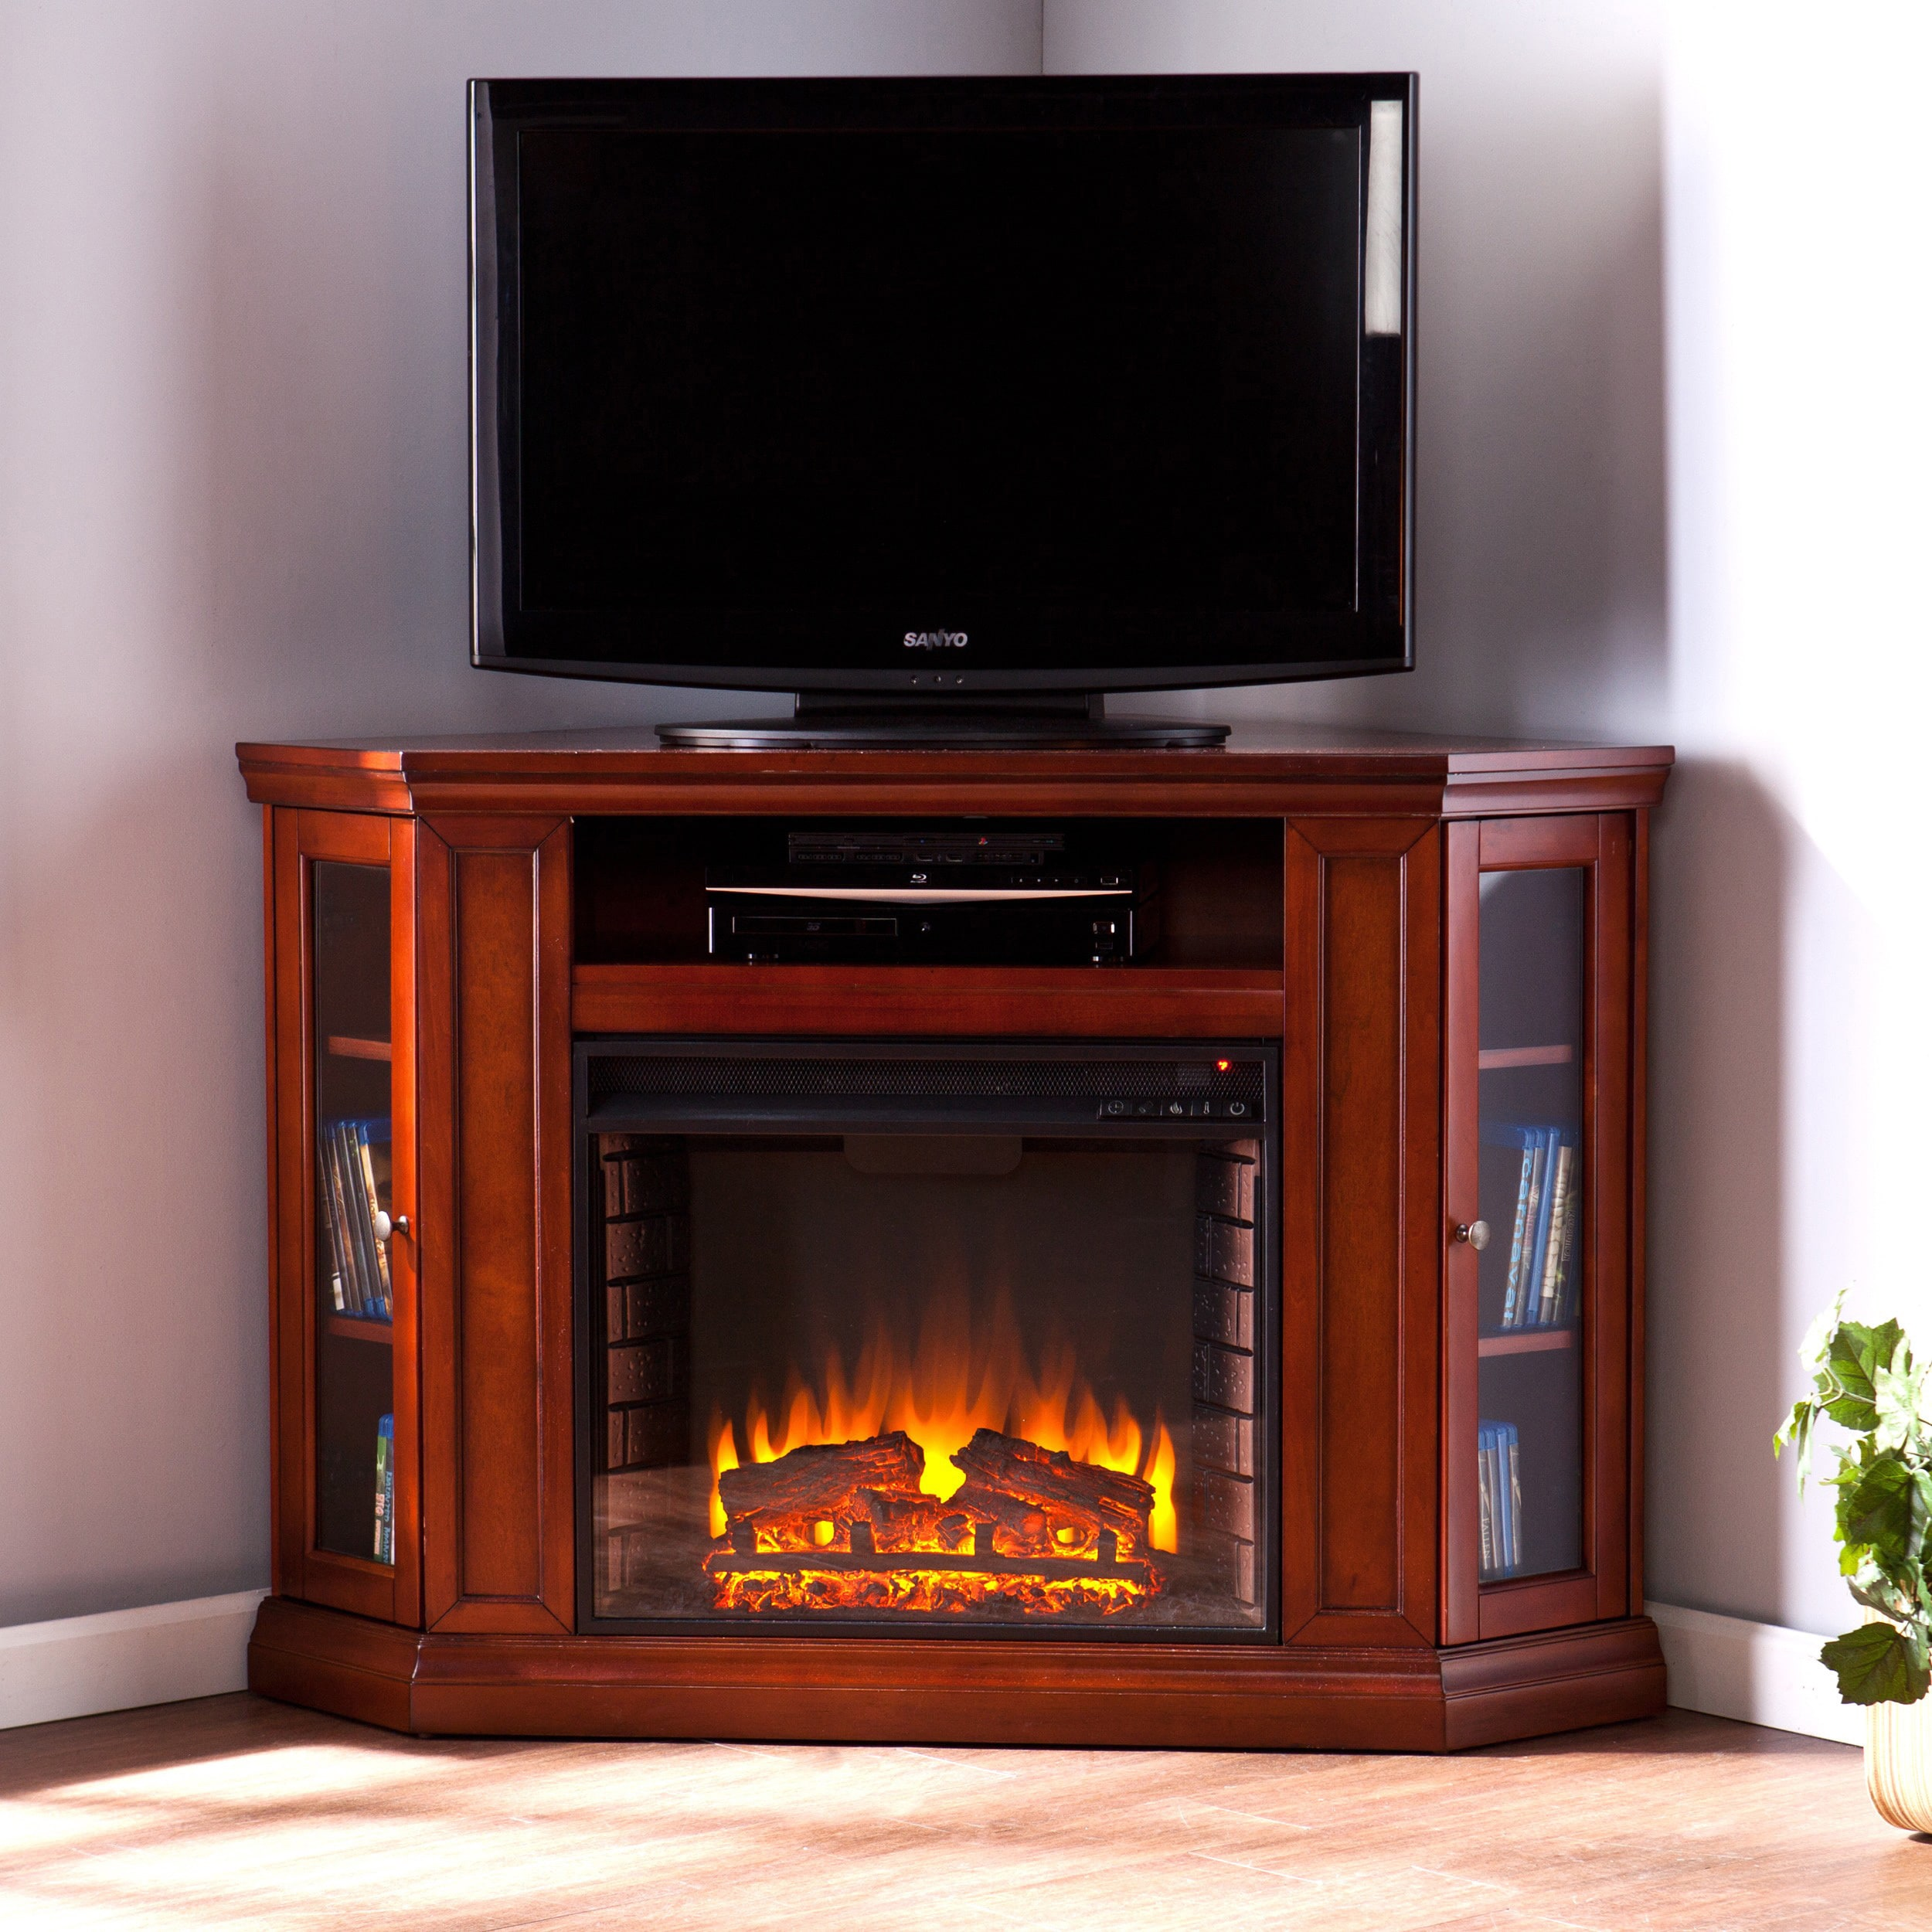 48 Corner Tv Stand For Flat Screen With Storage Electric